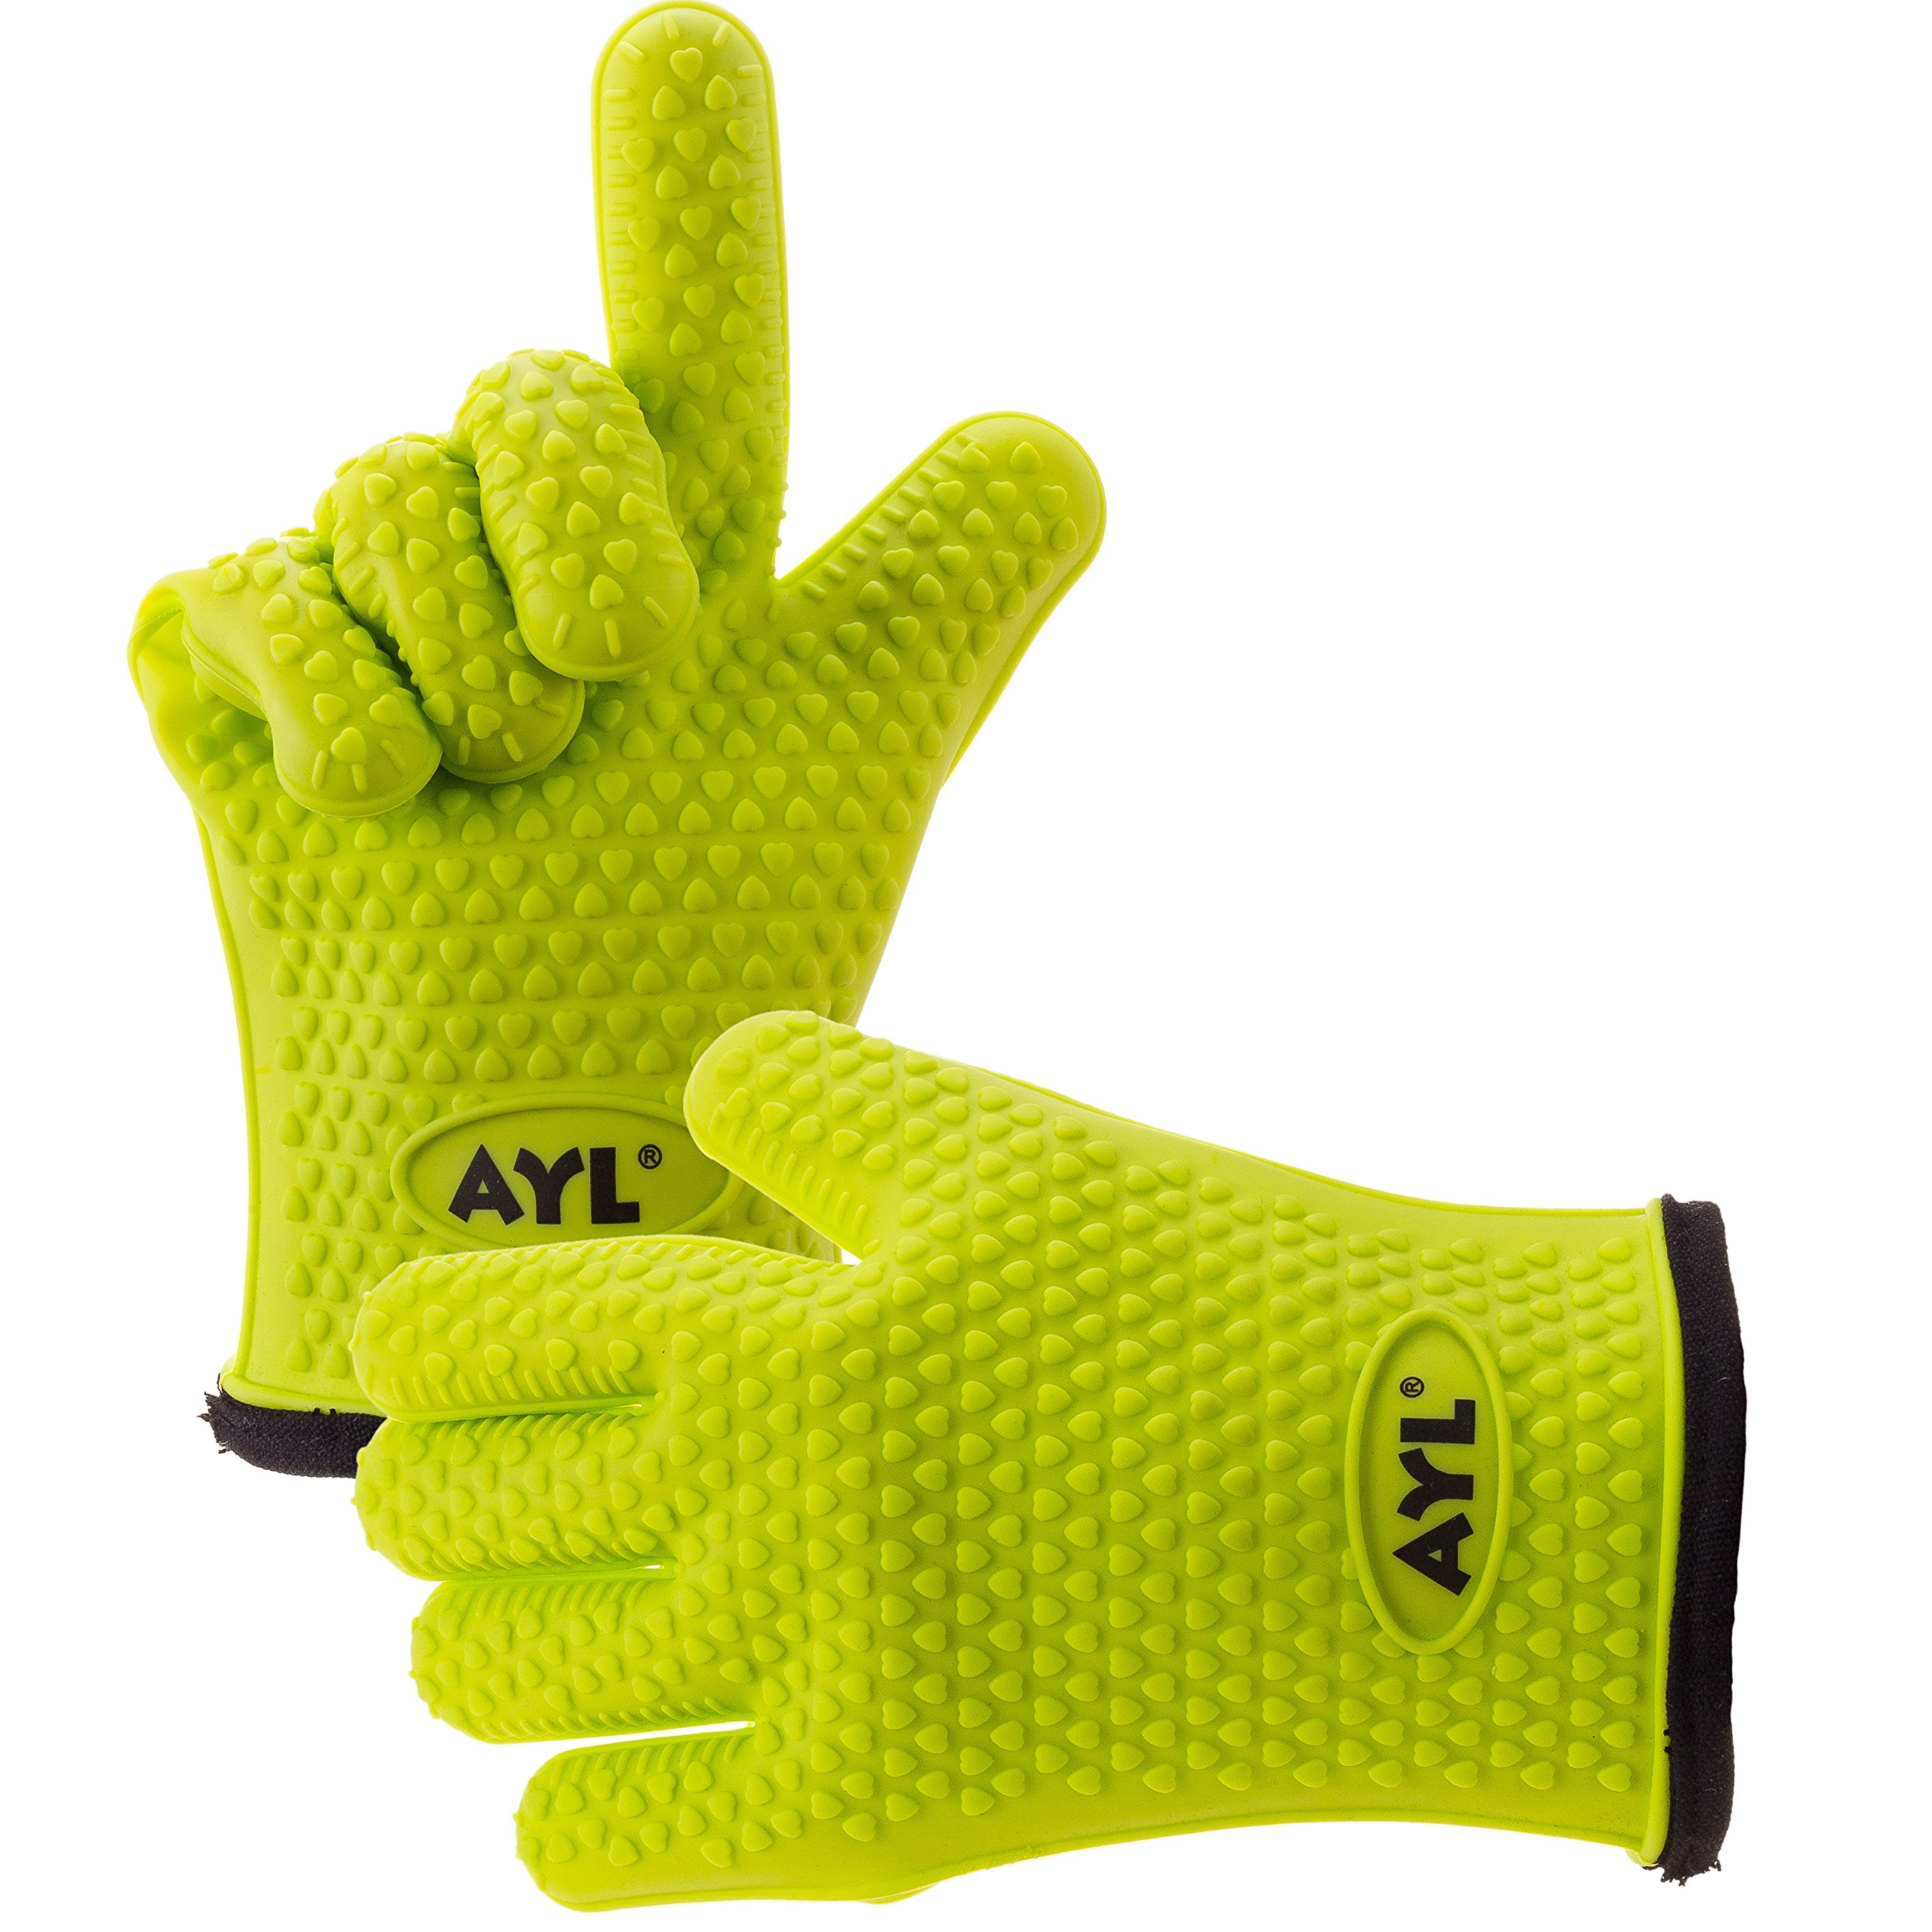 AYL Silicone Cooking Gloves - Heat Resistant Oven Mitt for Grilling, BBQ, Kitchen - Safe Handling of Pots and Pans - Cooking & Baking Non-Slip Potholders - Internal Protective Cotton Layer by AYL